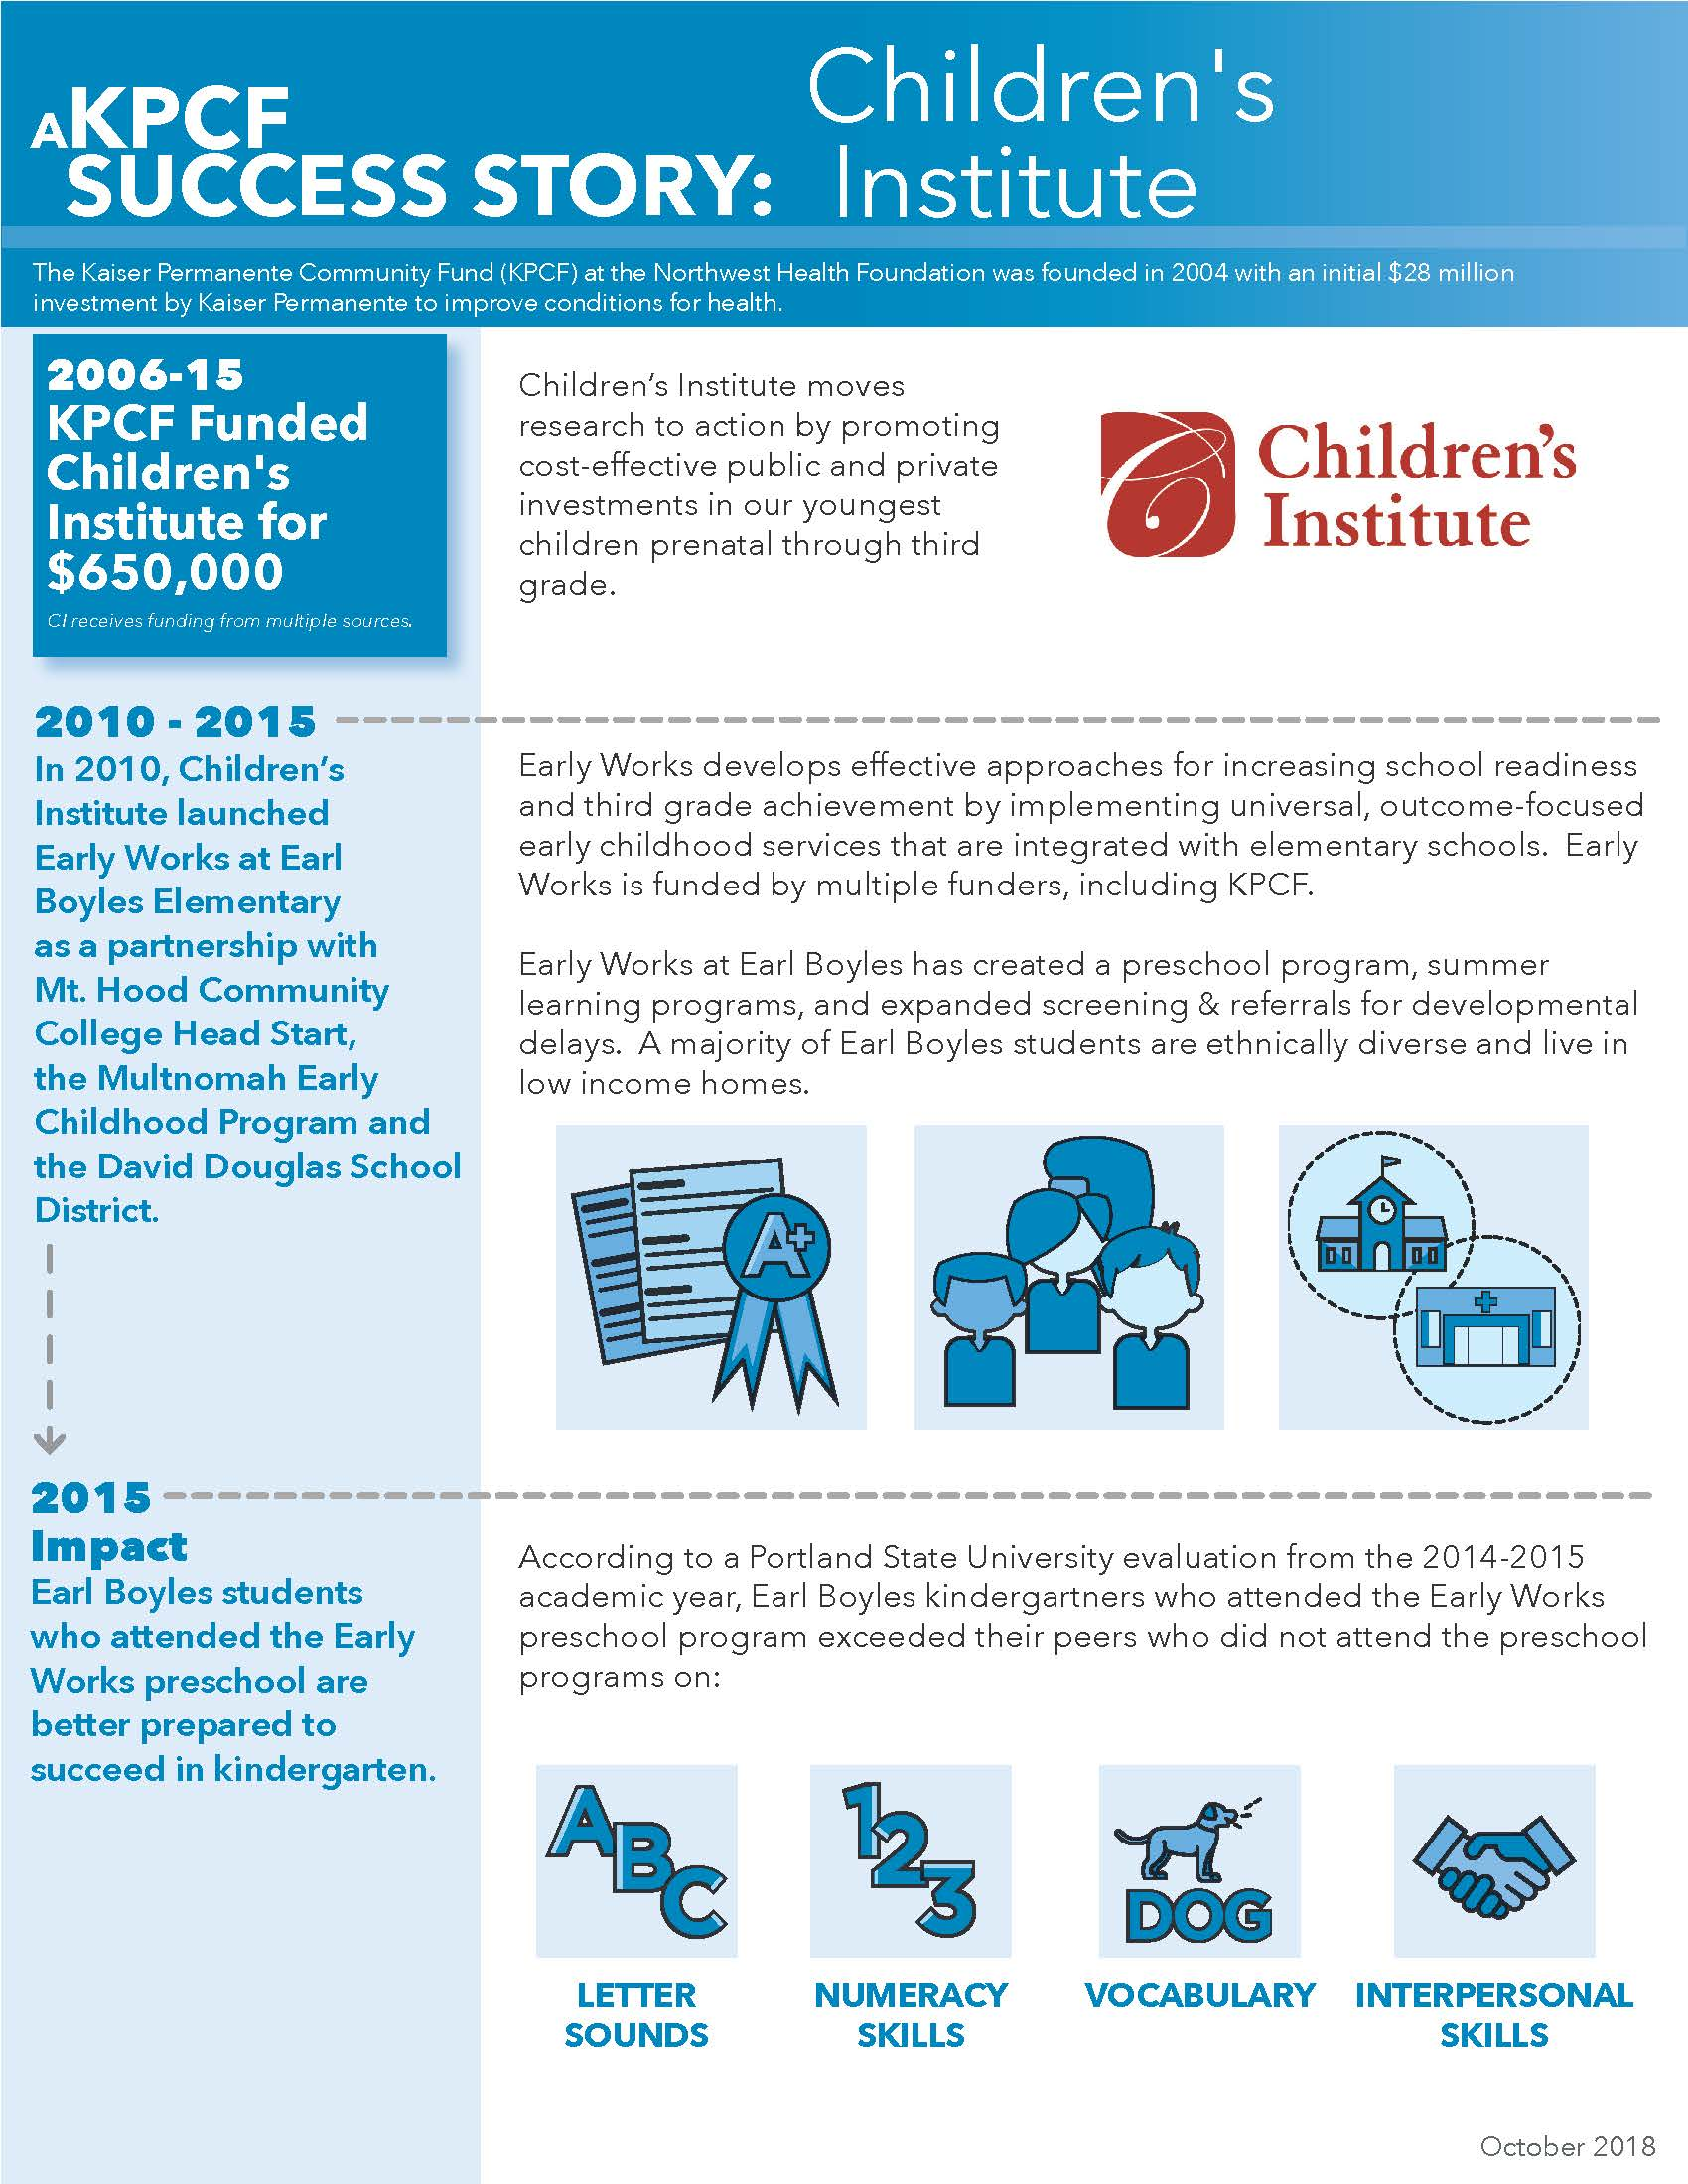 "An infographic summarizing some of Children's Institute's successes. ""According to a Portland State University evaluation from the 2014-2015 academic year, Earl Boyles kindergarteners who attended the Early Works preschool program exceeded their peers who did not attend the preschool programs on letter sounds, numeracy skills, vocabulary and interpersonal skills."""